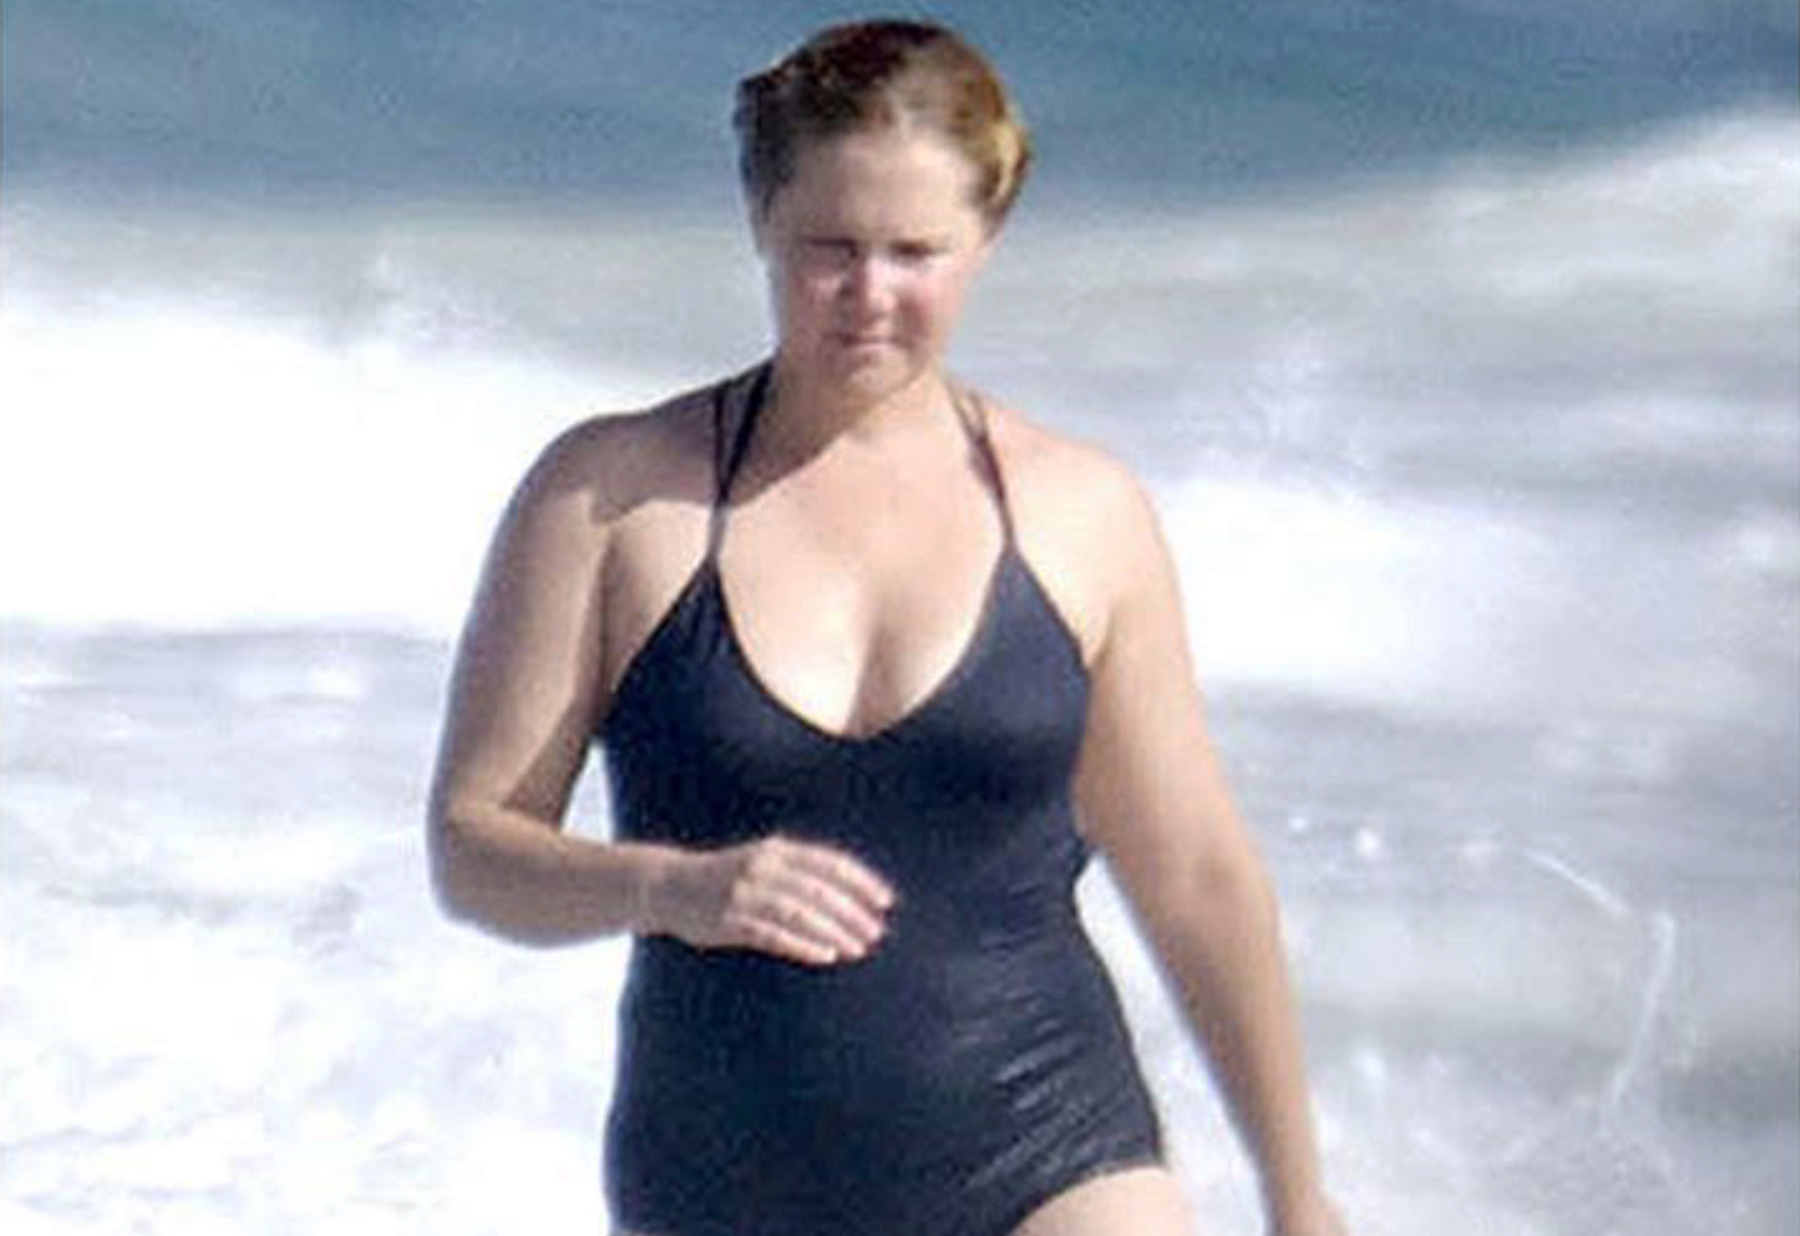 Amy Schumer Calls Out Haters With Swimsuit Photo